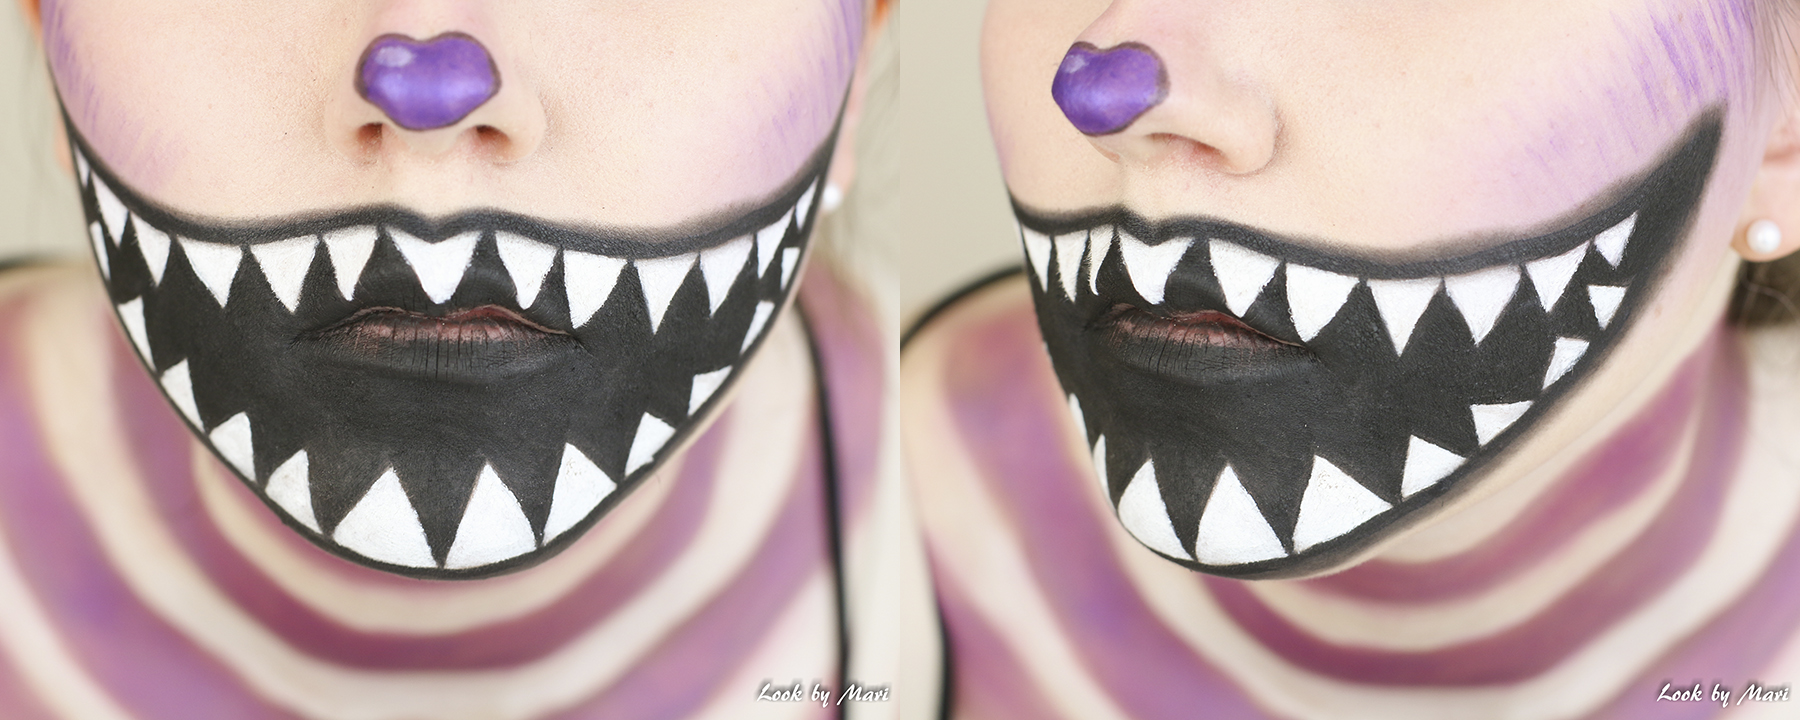 12 halloween makeup ideas scary easy quick colorful 2017 tutorial